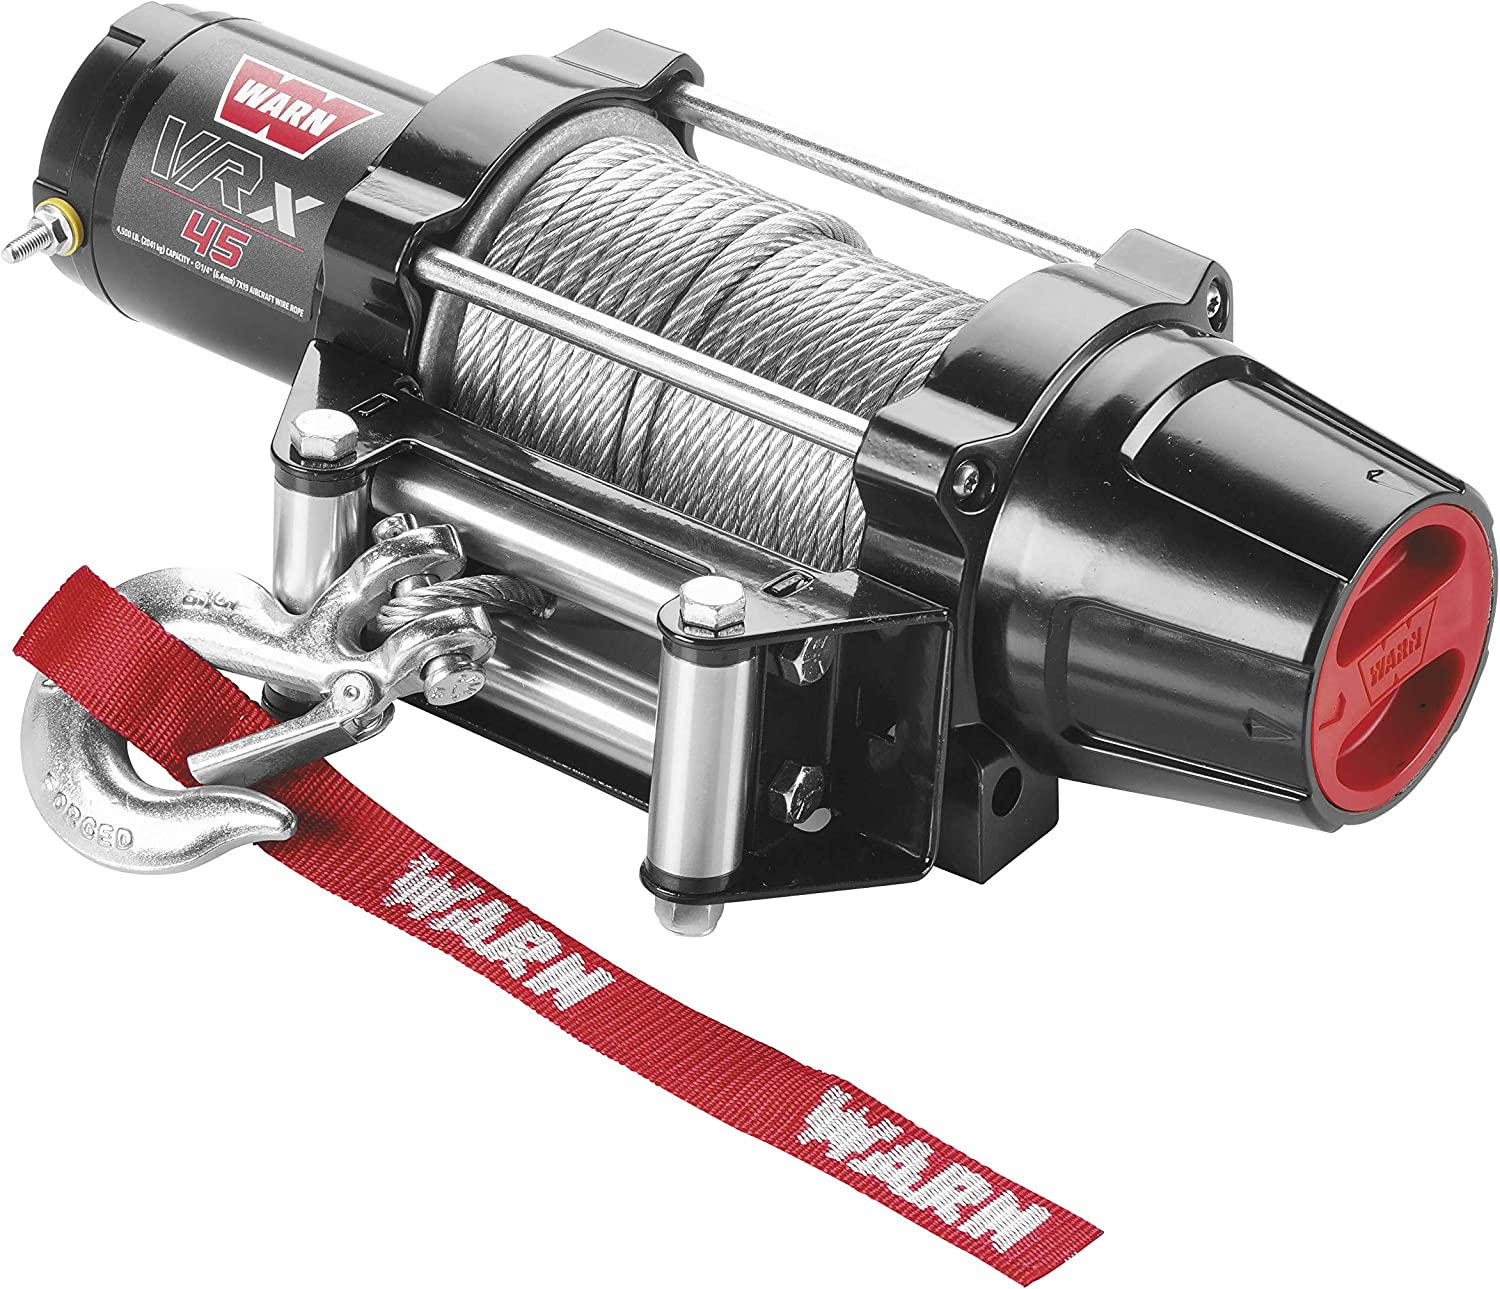 WARN 101045 VRX 45 Powersports Winch With Steel Rope